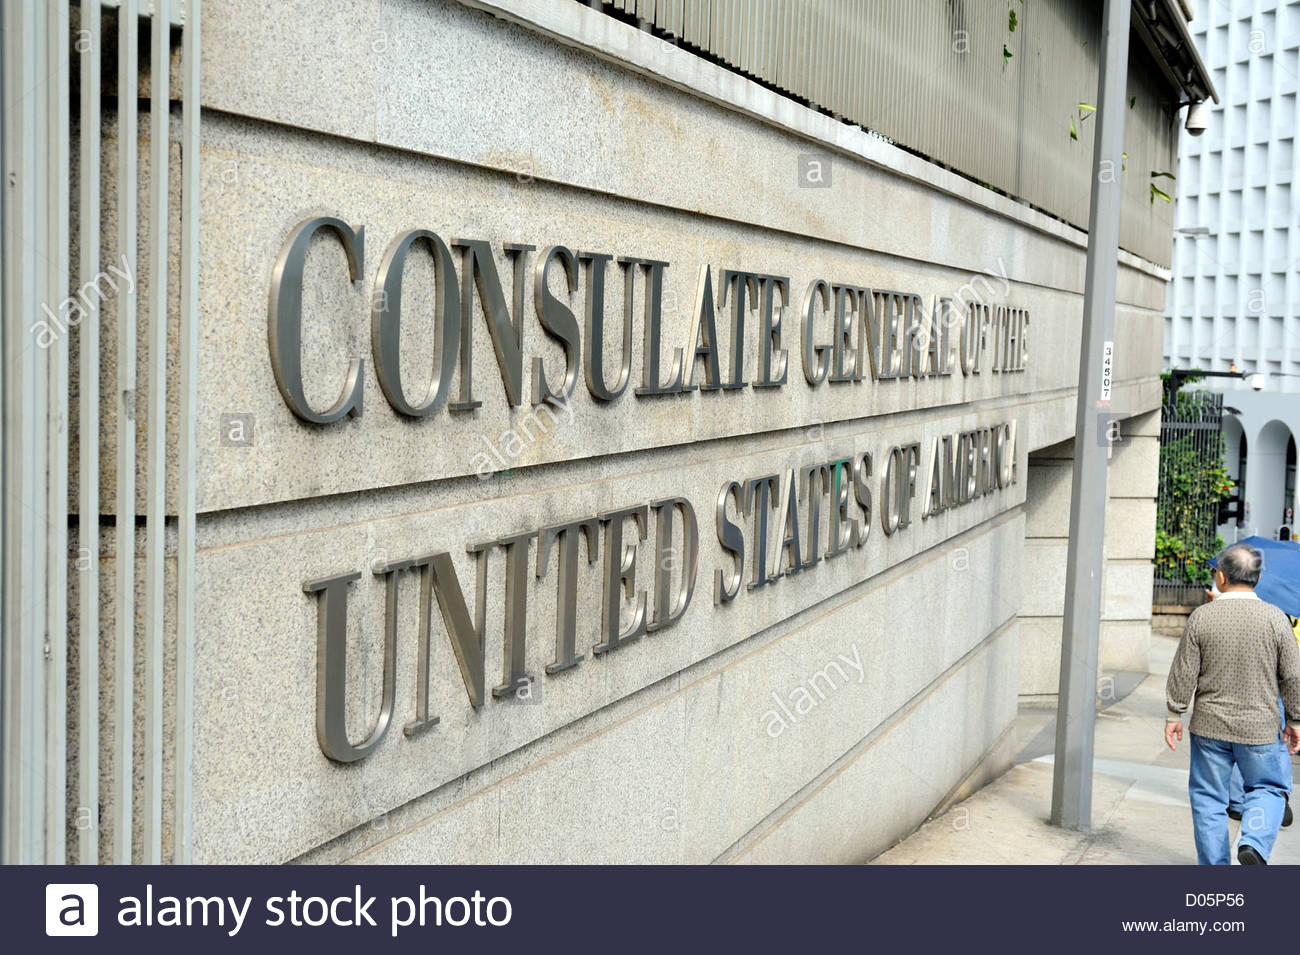 Consulate General Stock Photos & Consulate General Stock